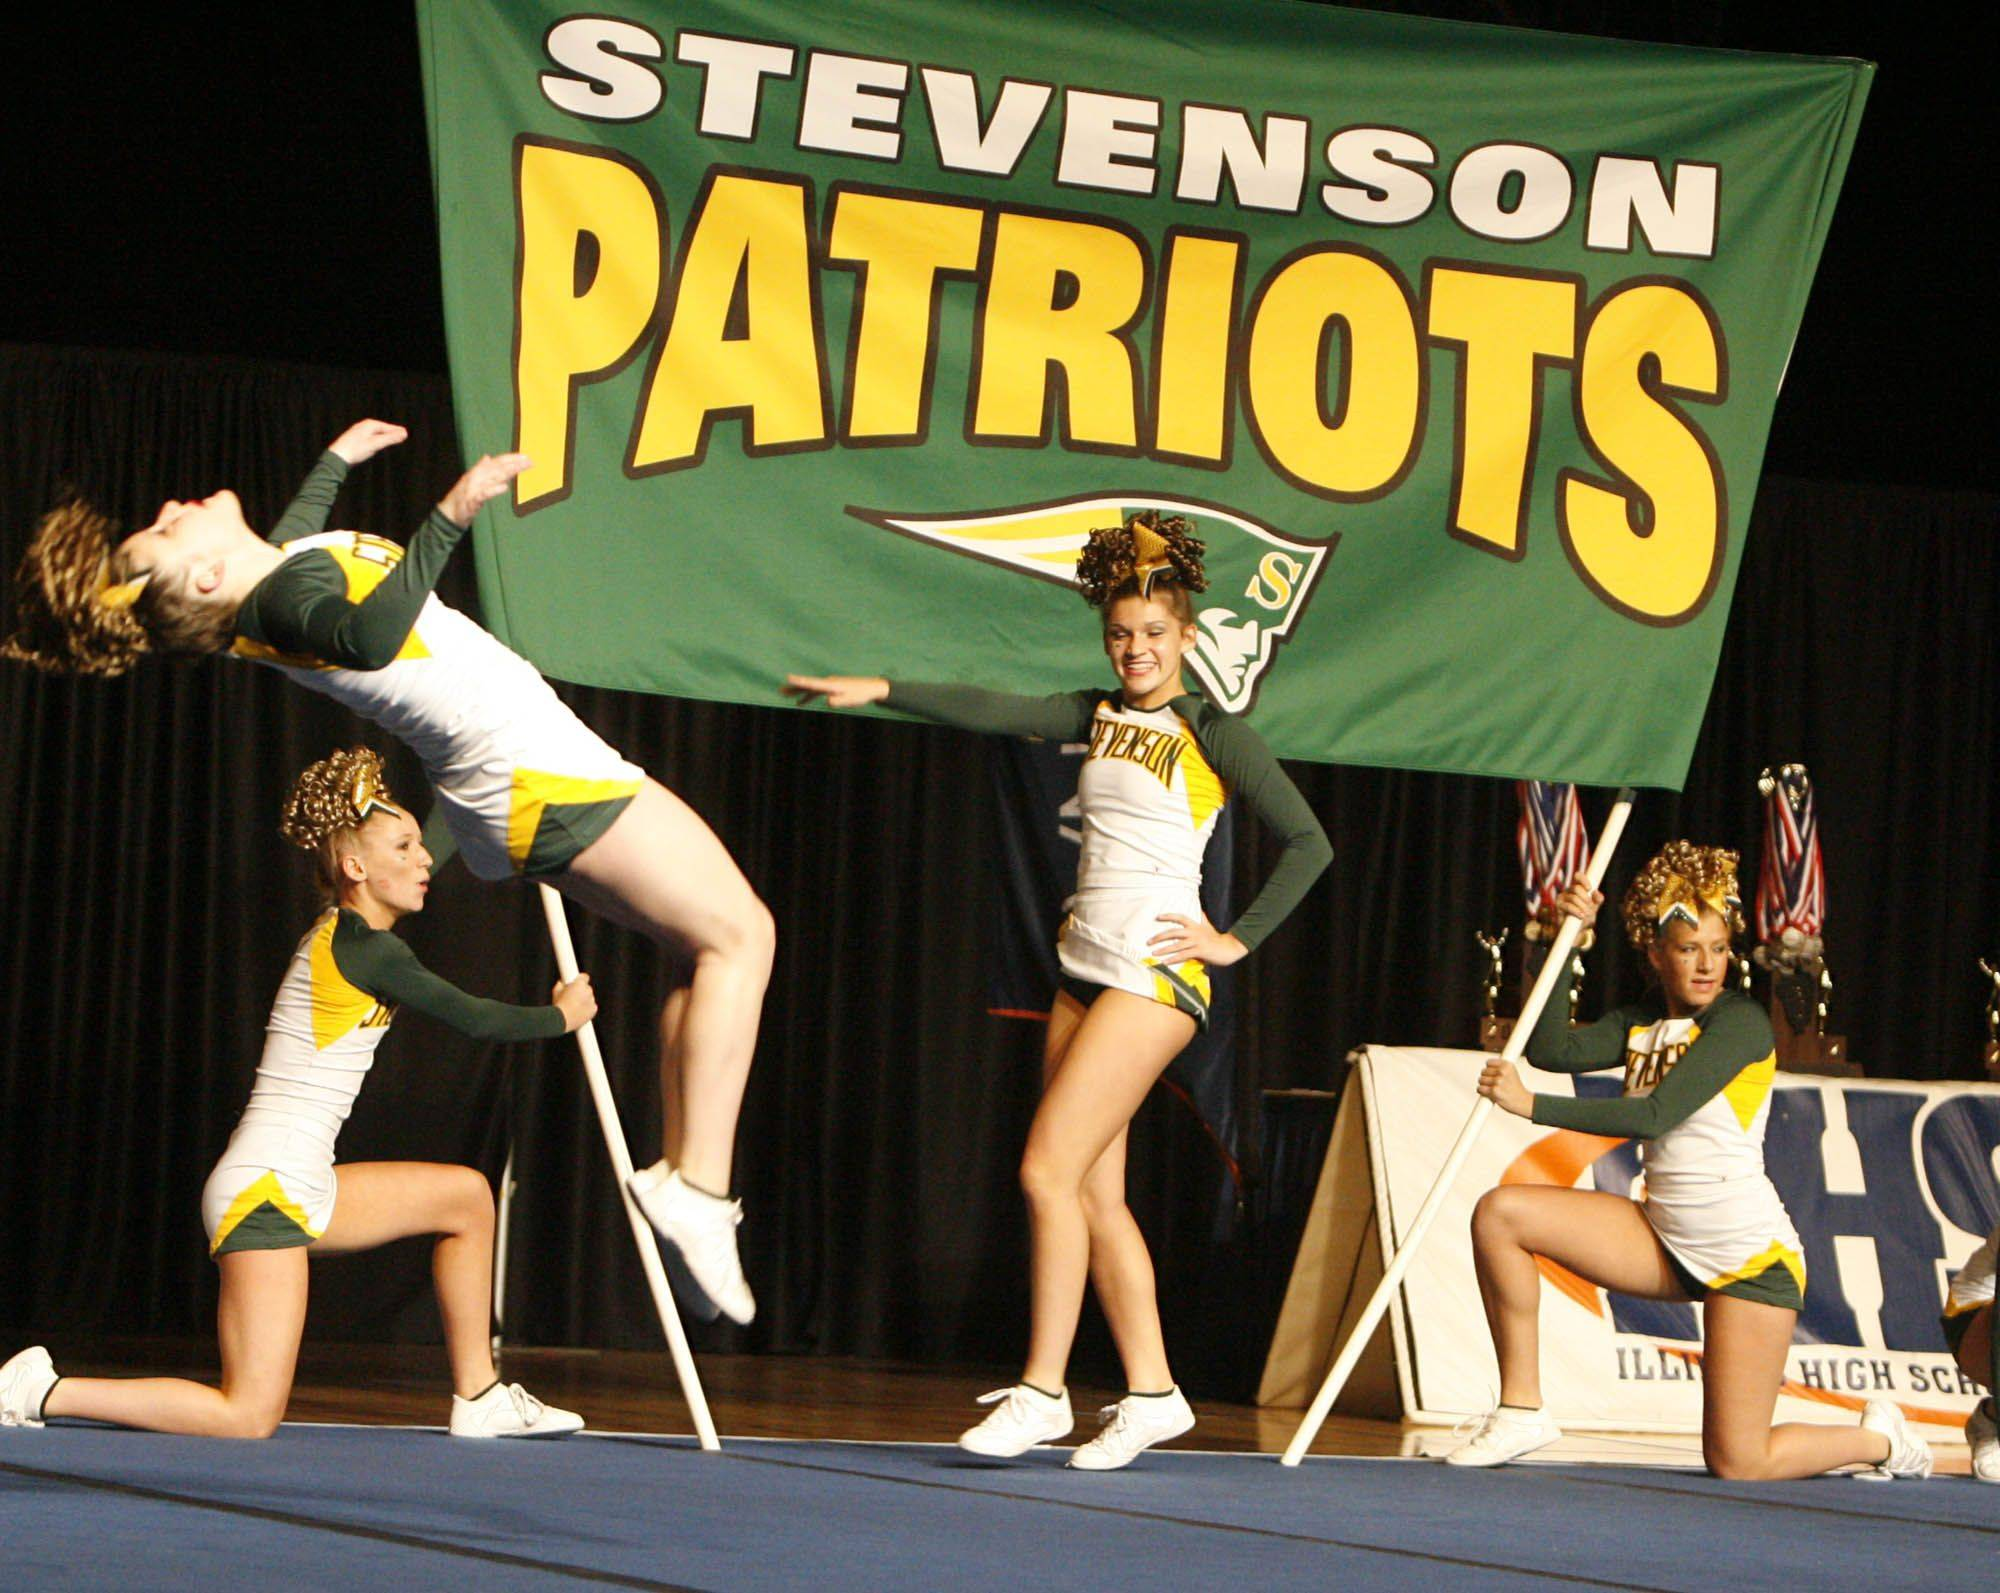 Stevenson performs at IHSA cheerleading state finals at U.S. Cellular Coliseum in Bloomington on Saturday, February 4th.